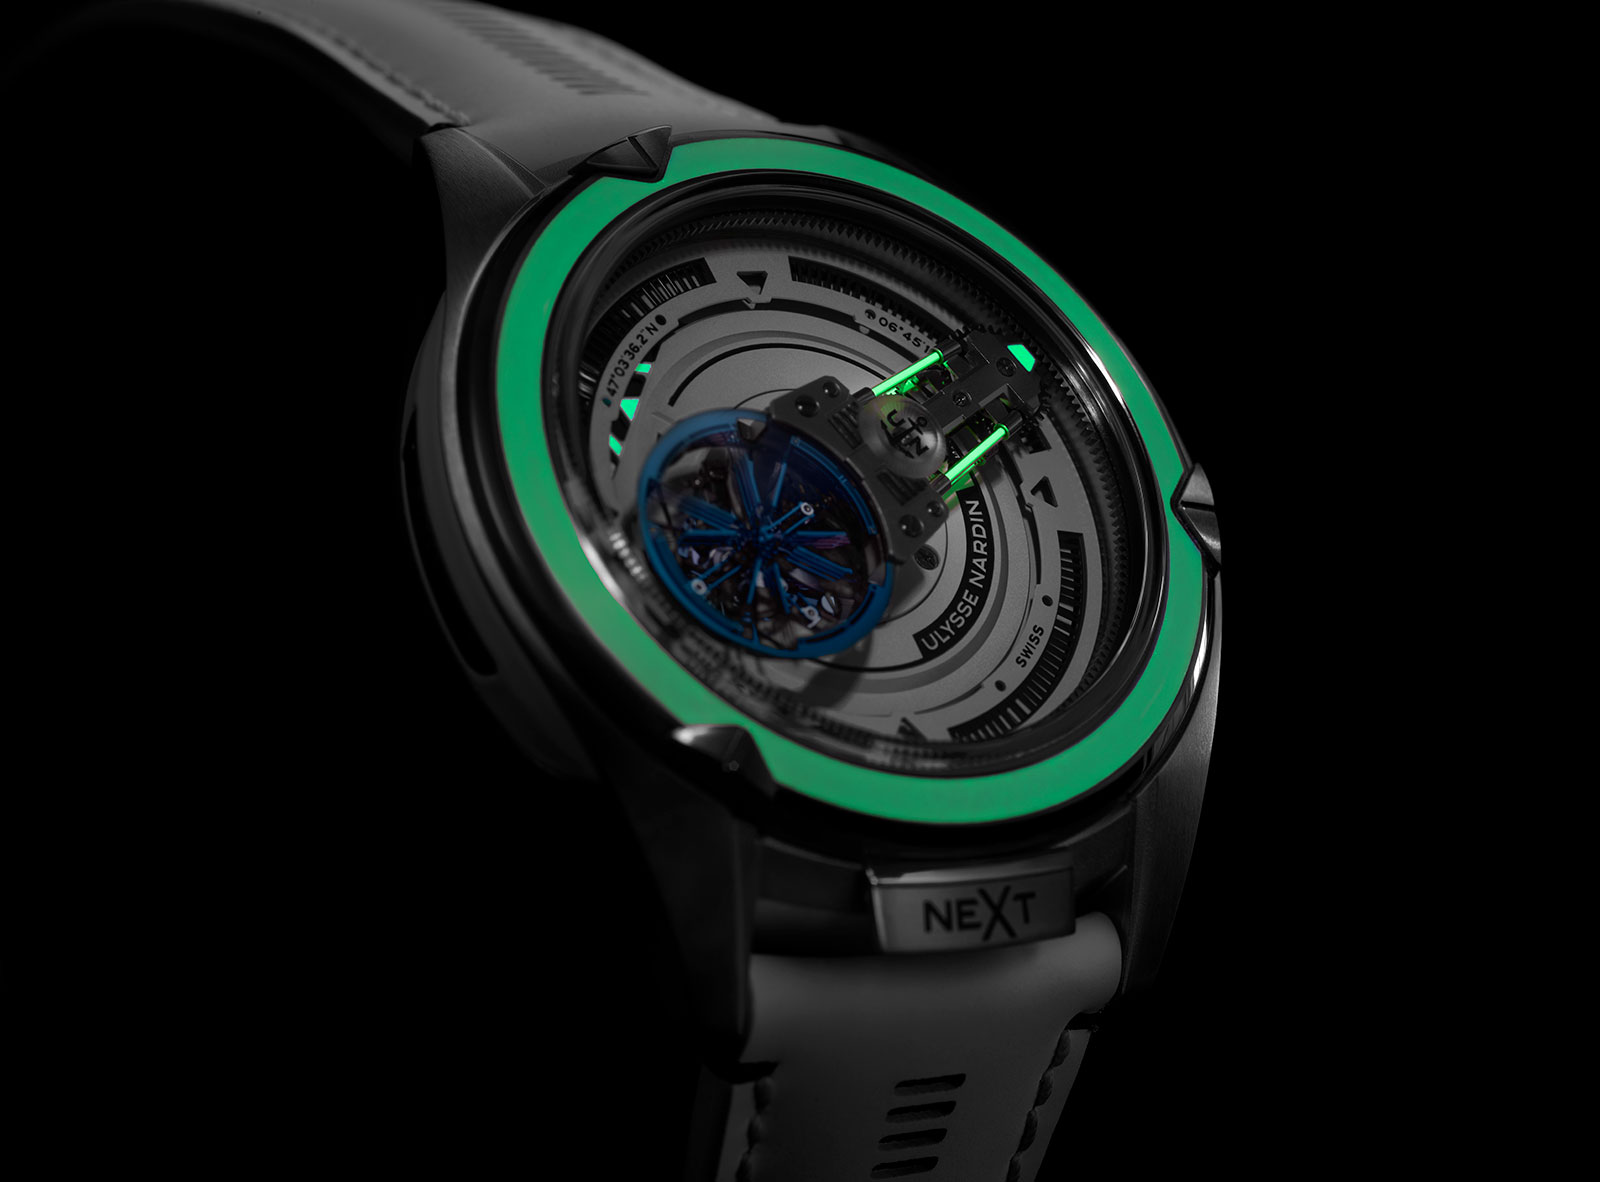 Ulysse Nardin Freak Next Watch 2